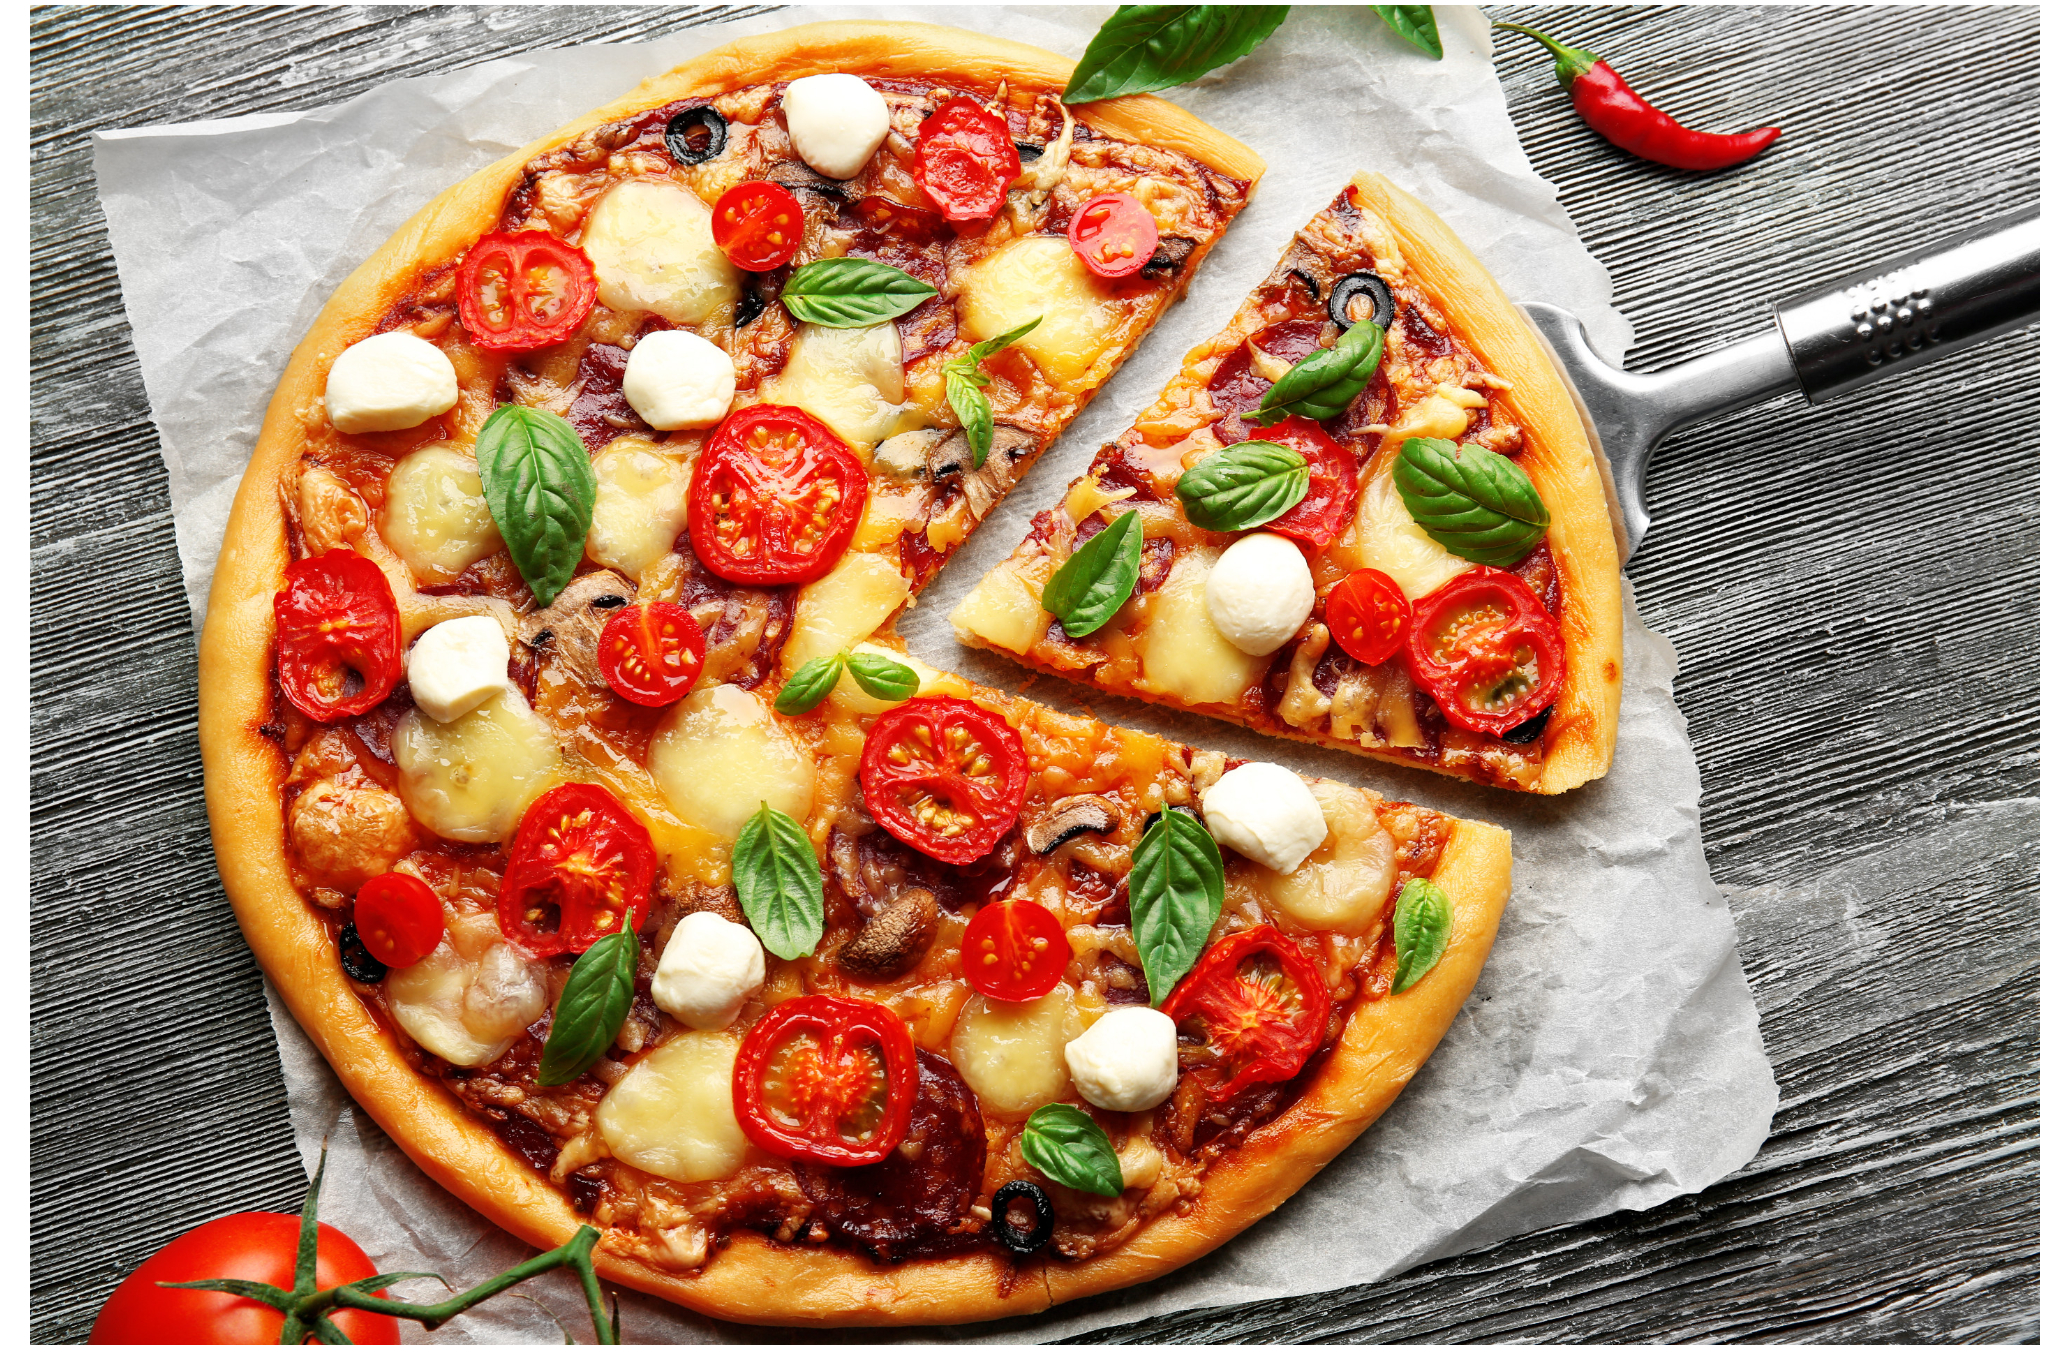 stock photo of a pizza available in picsart